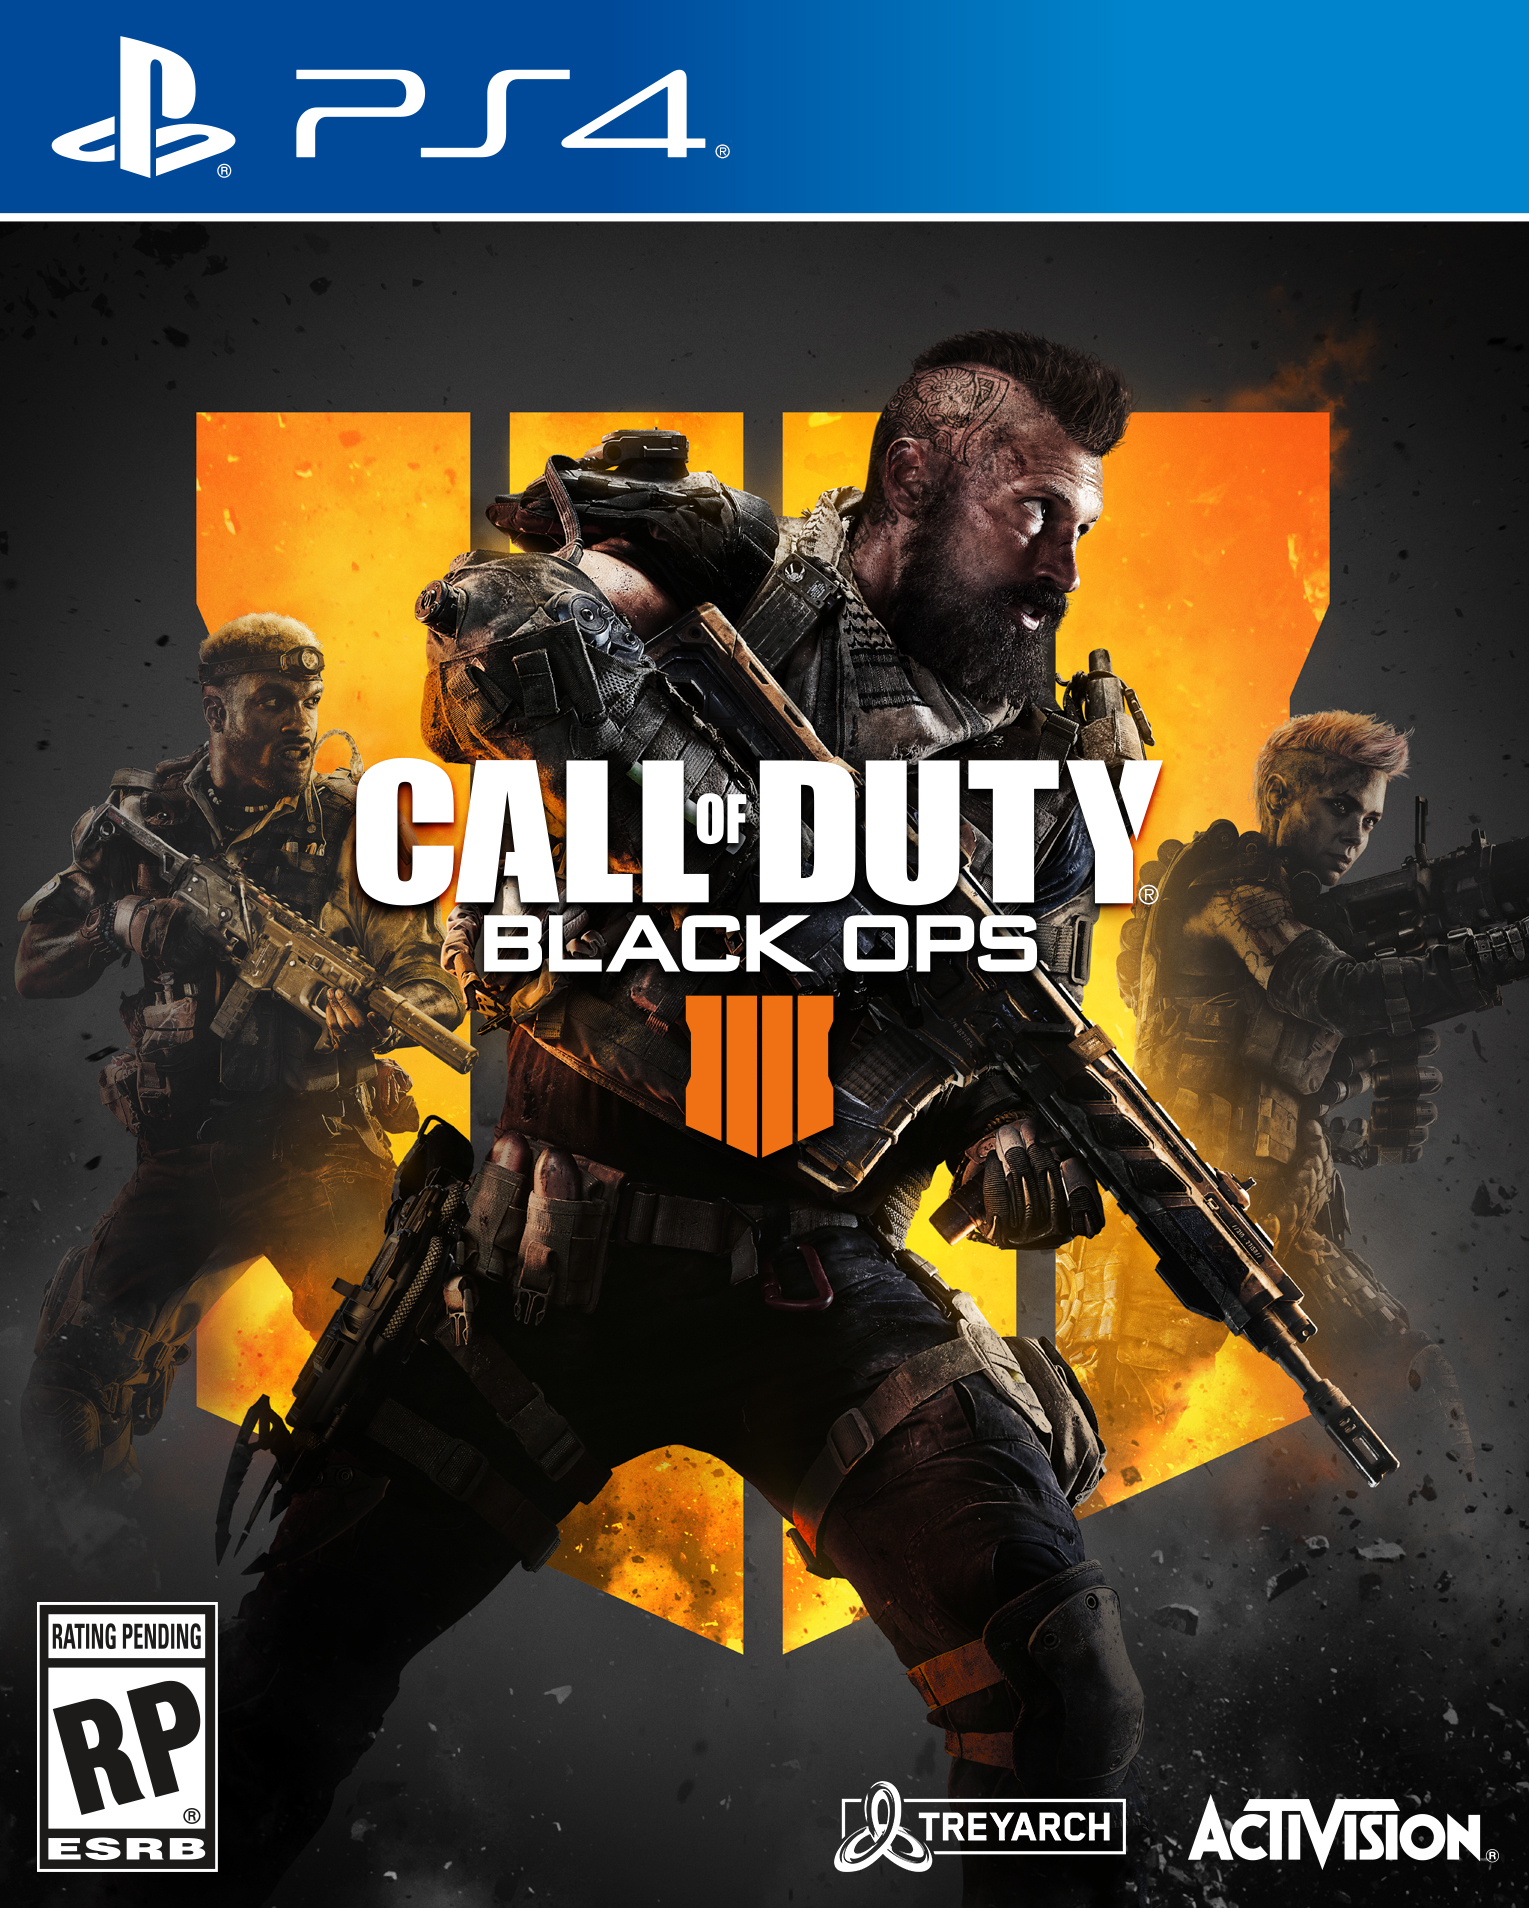 Call of Duty: Black Ops 4, Activision, Playstation 4 � Purchase the game to get 2XP � Only... by Activision